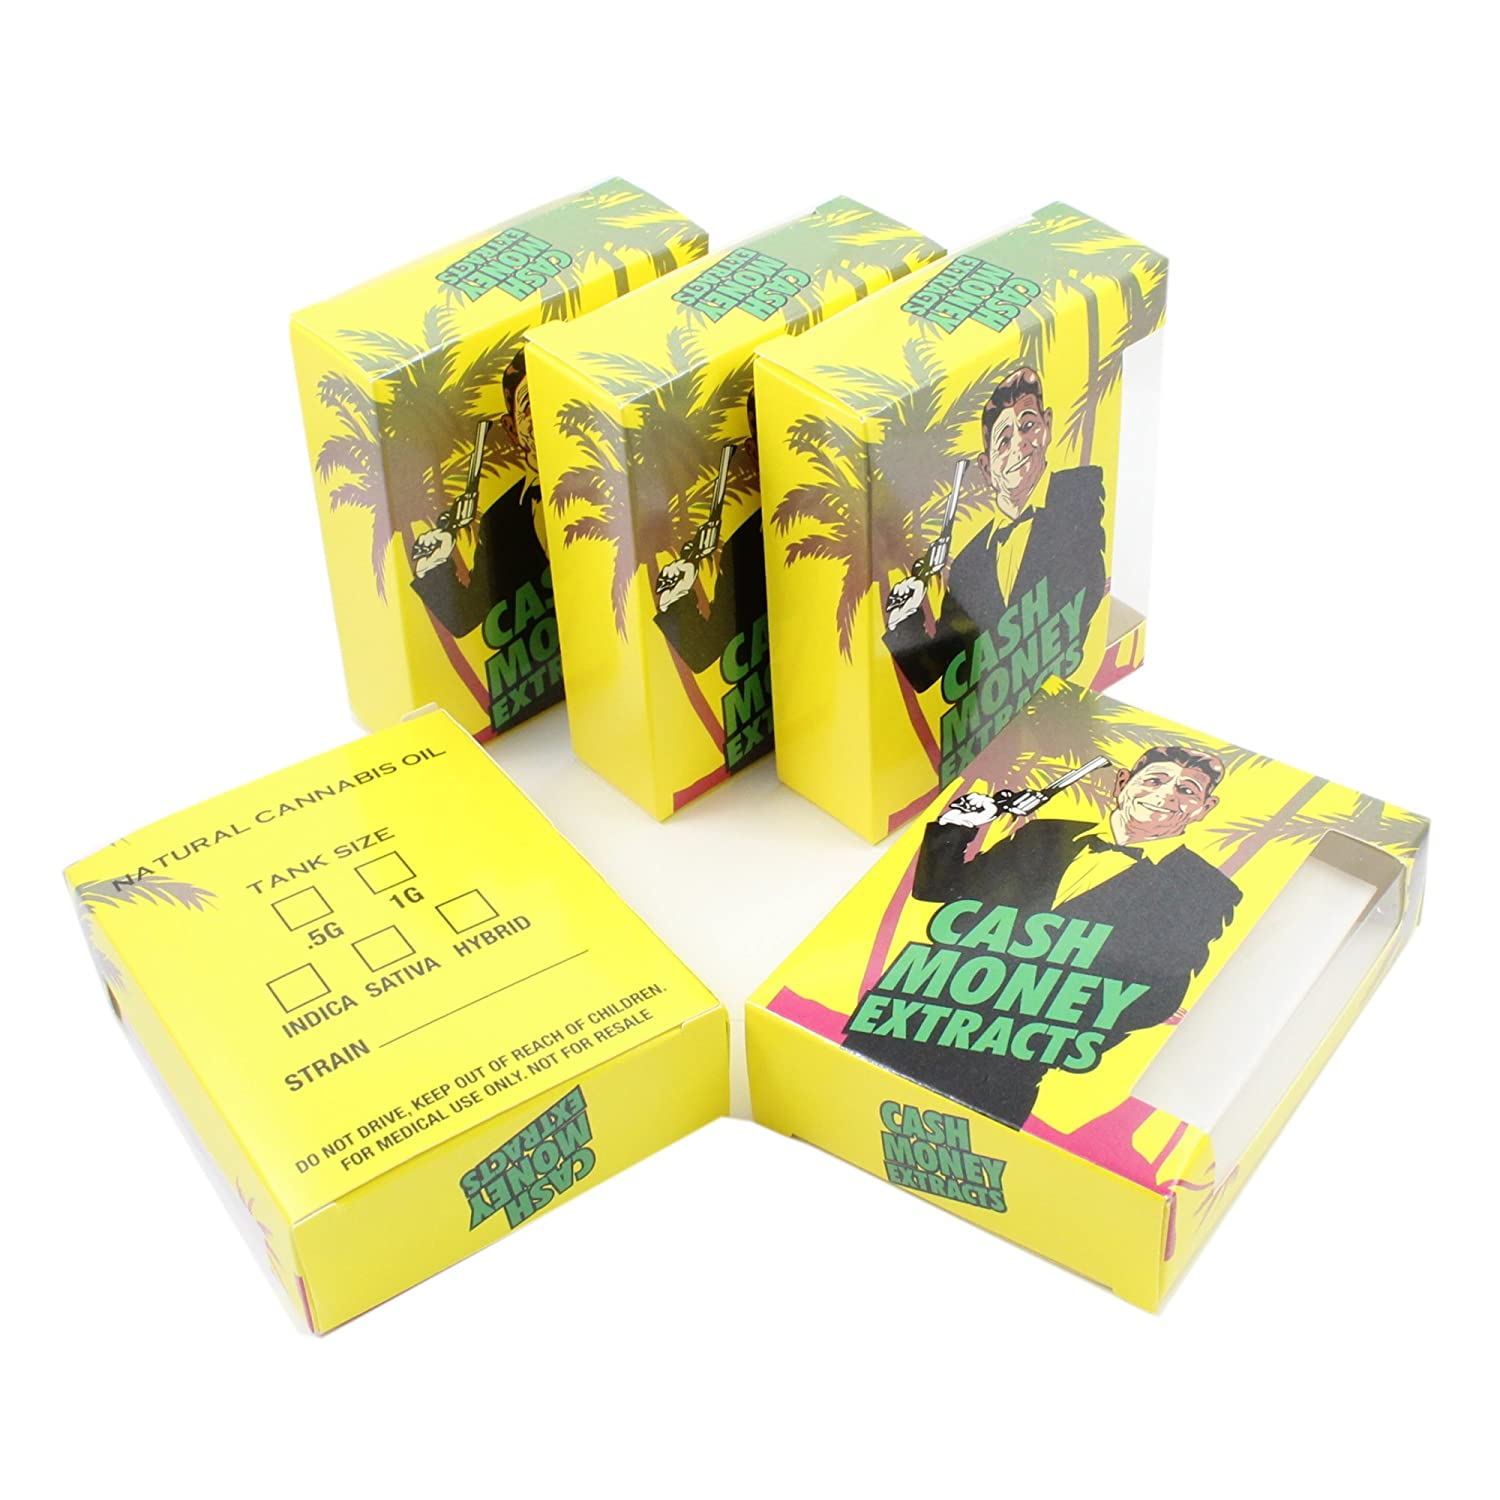 25 Cash Money Extracts Empty Dispensary Supply Display Boxes by Shatter Labels VB-049